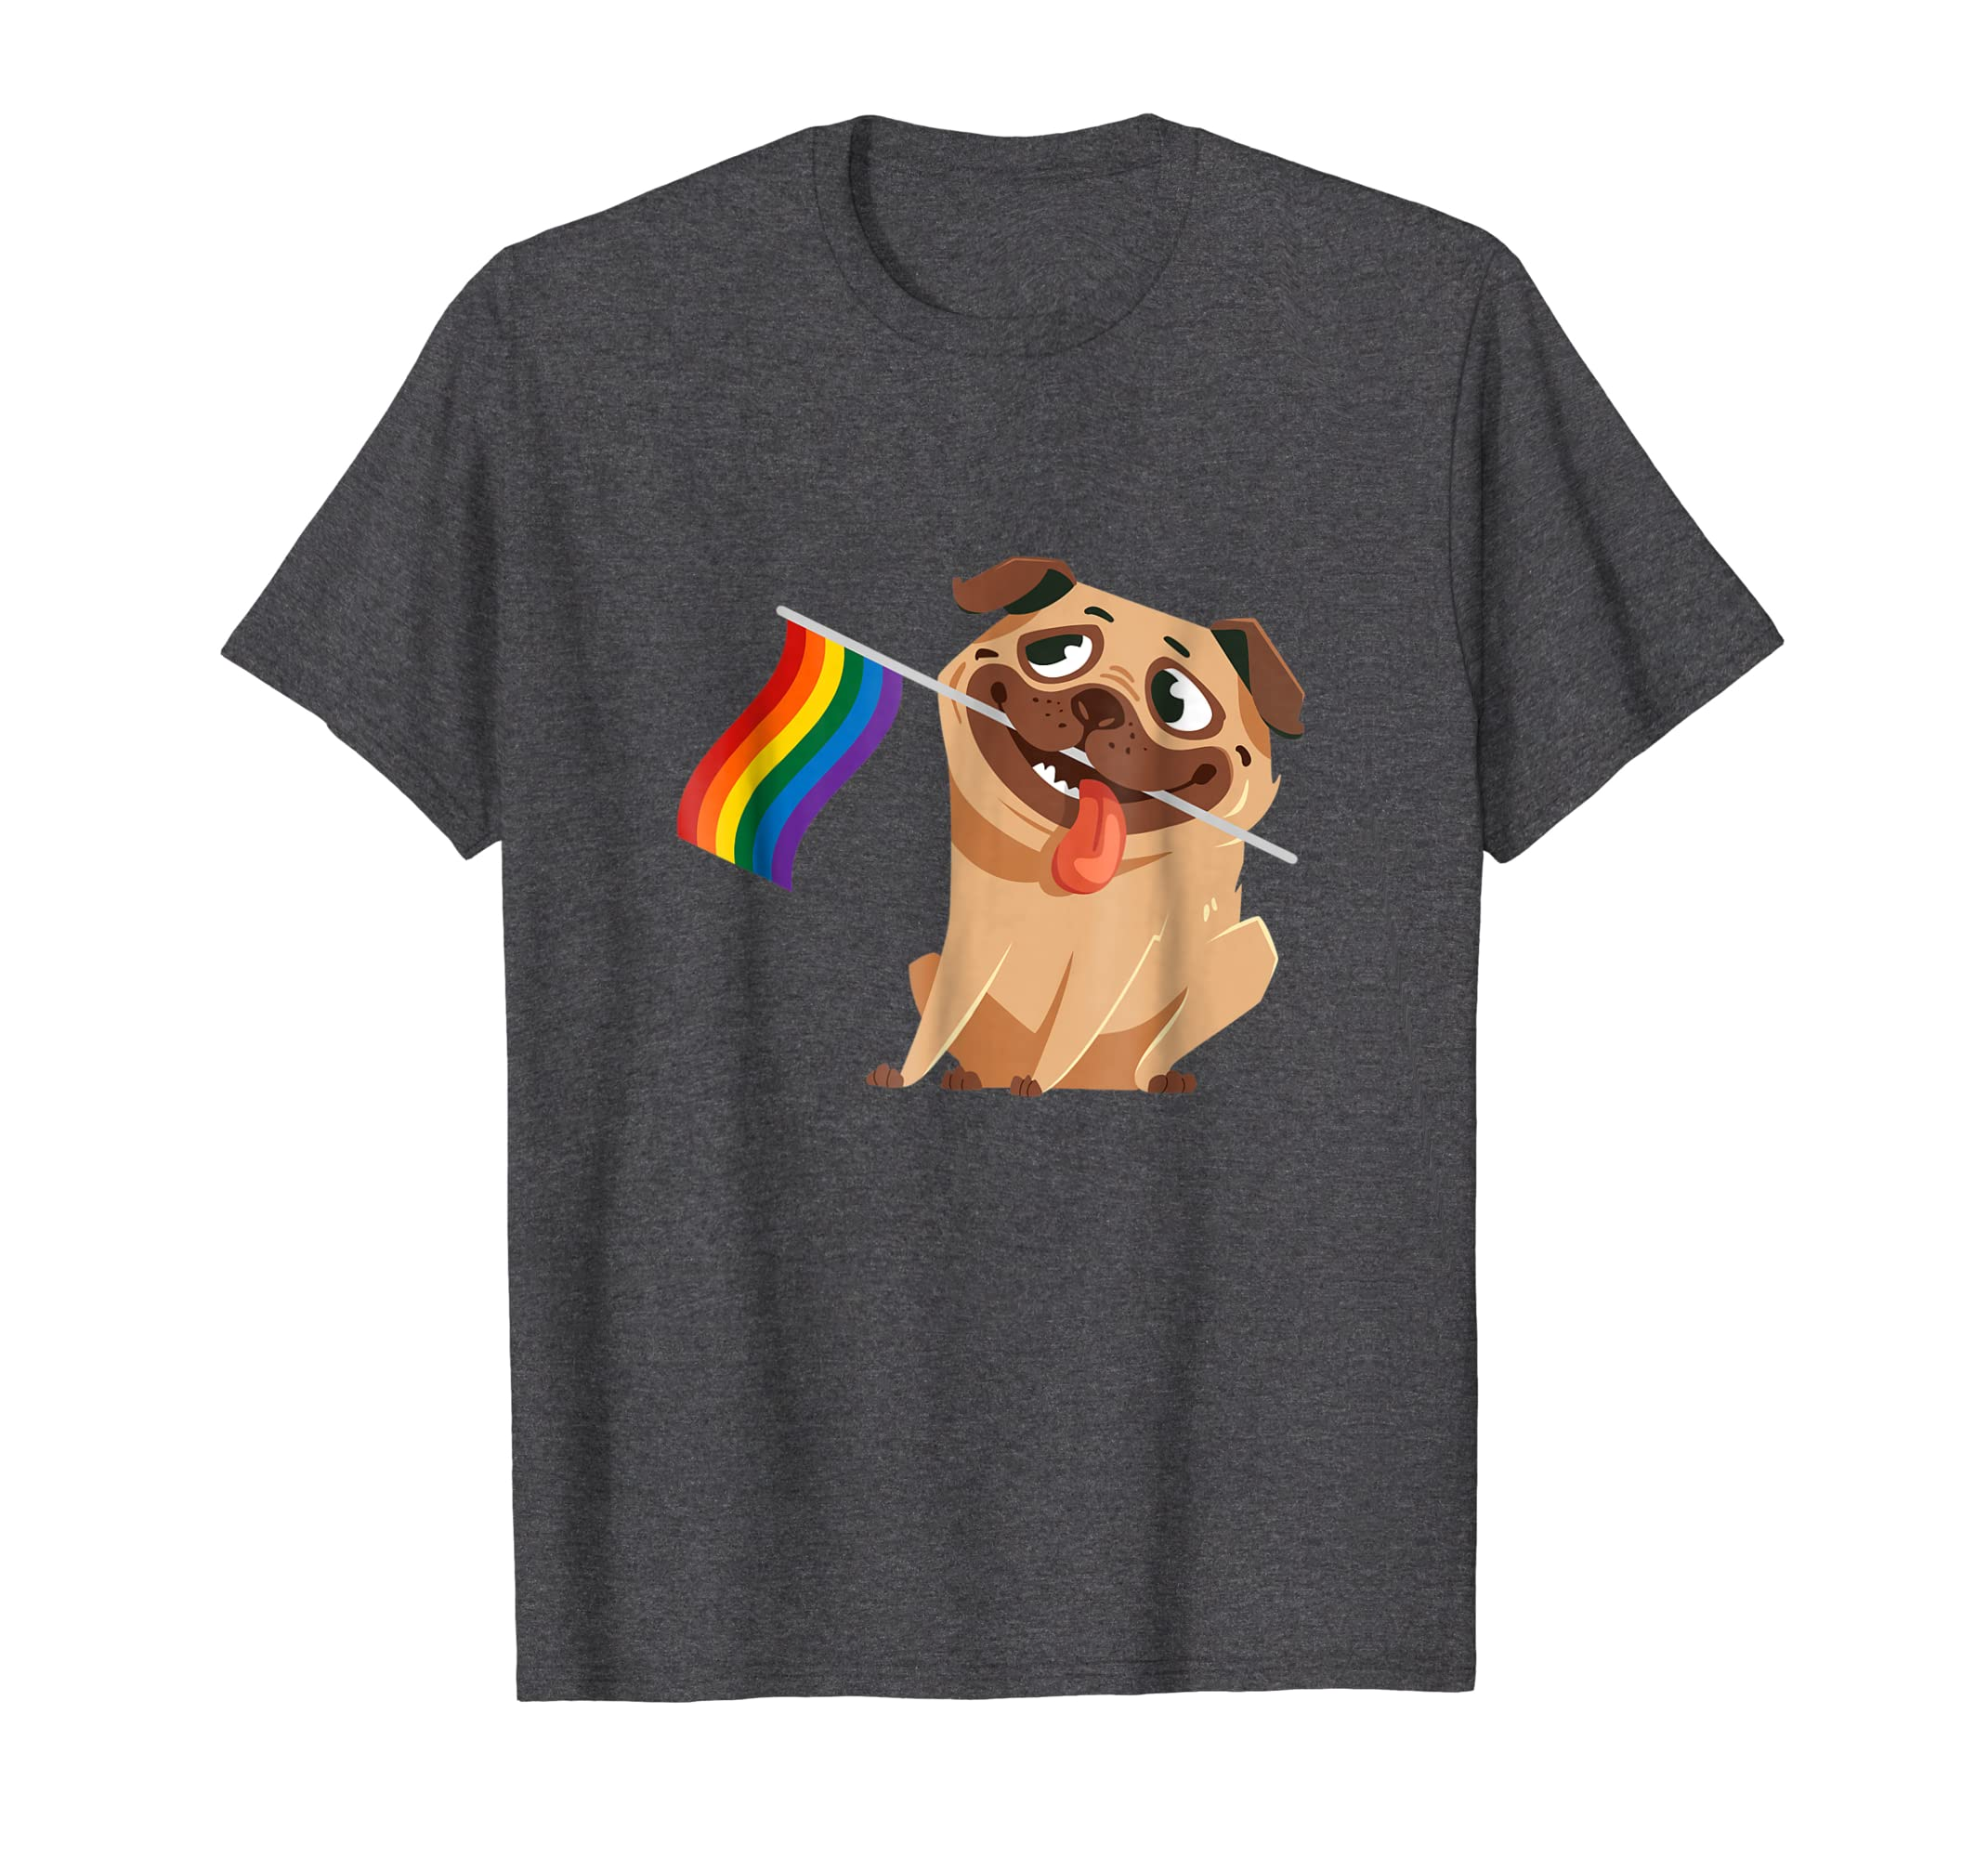 LGBT T-Shirts For Your Parents